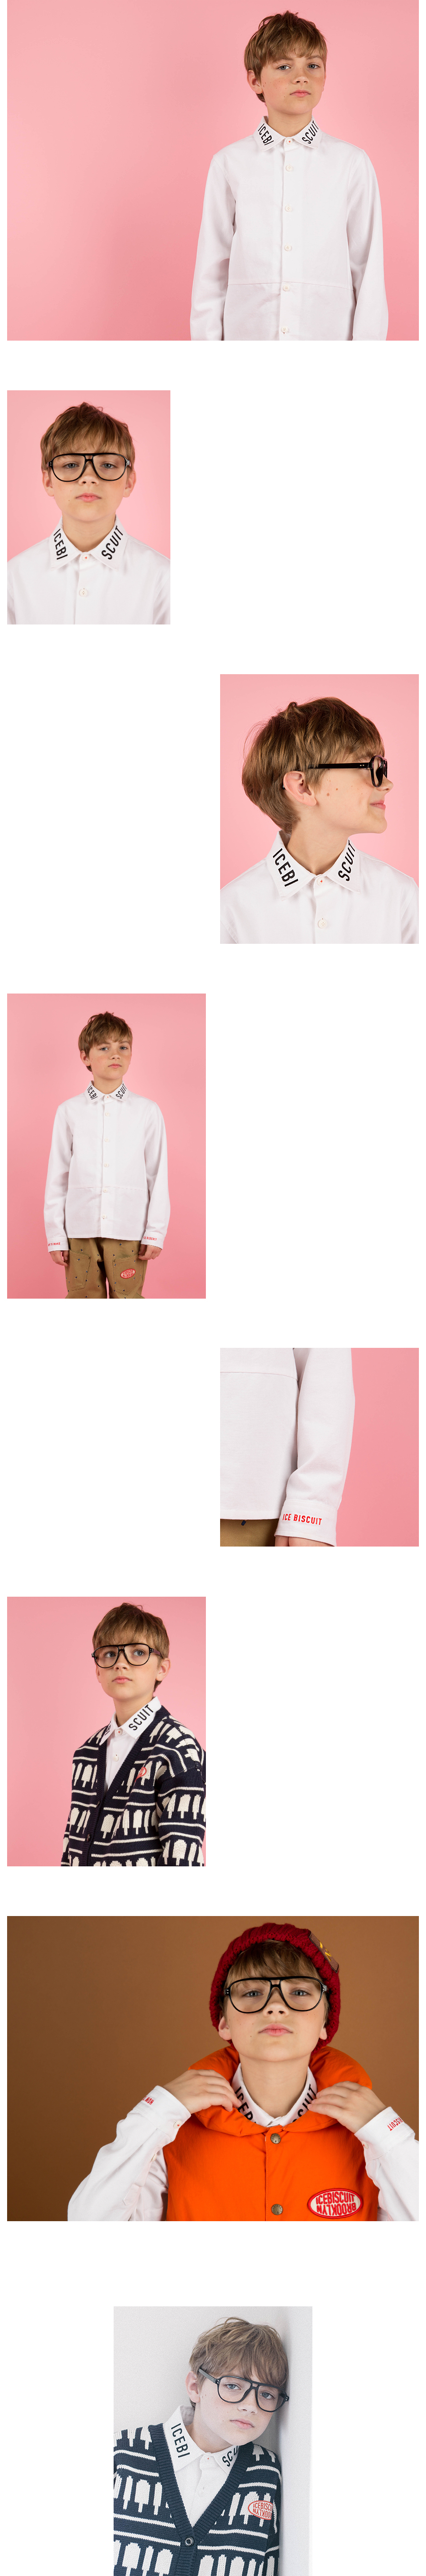 Icebiscuit oxford white shirts